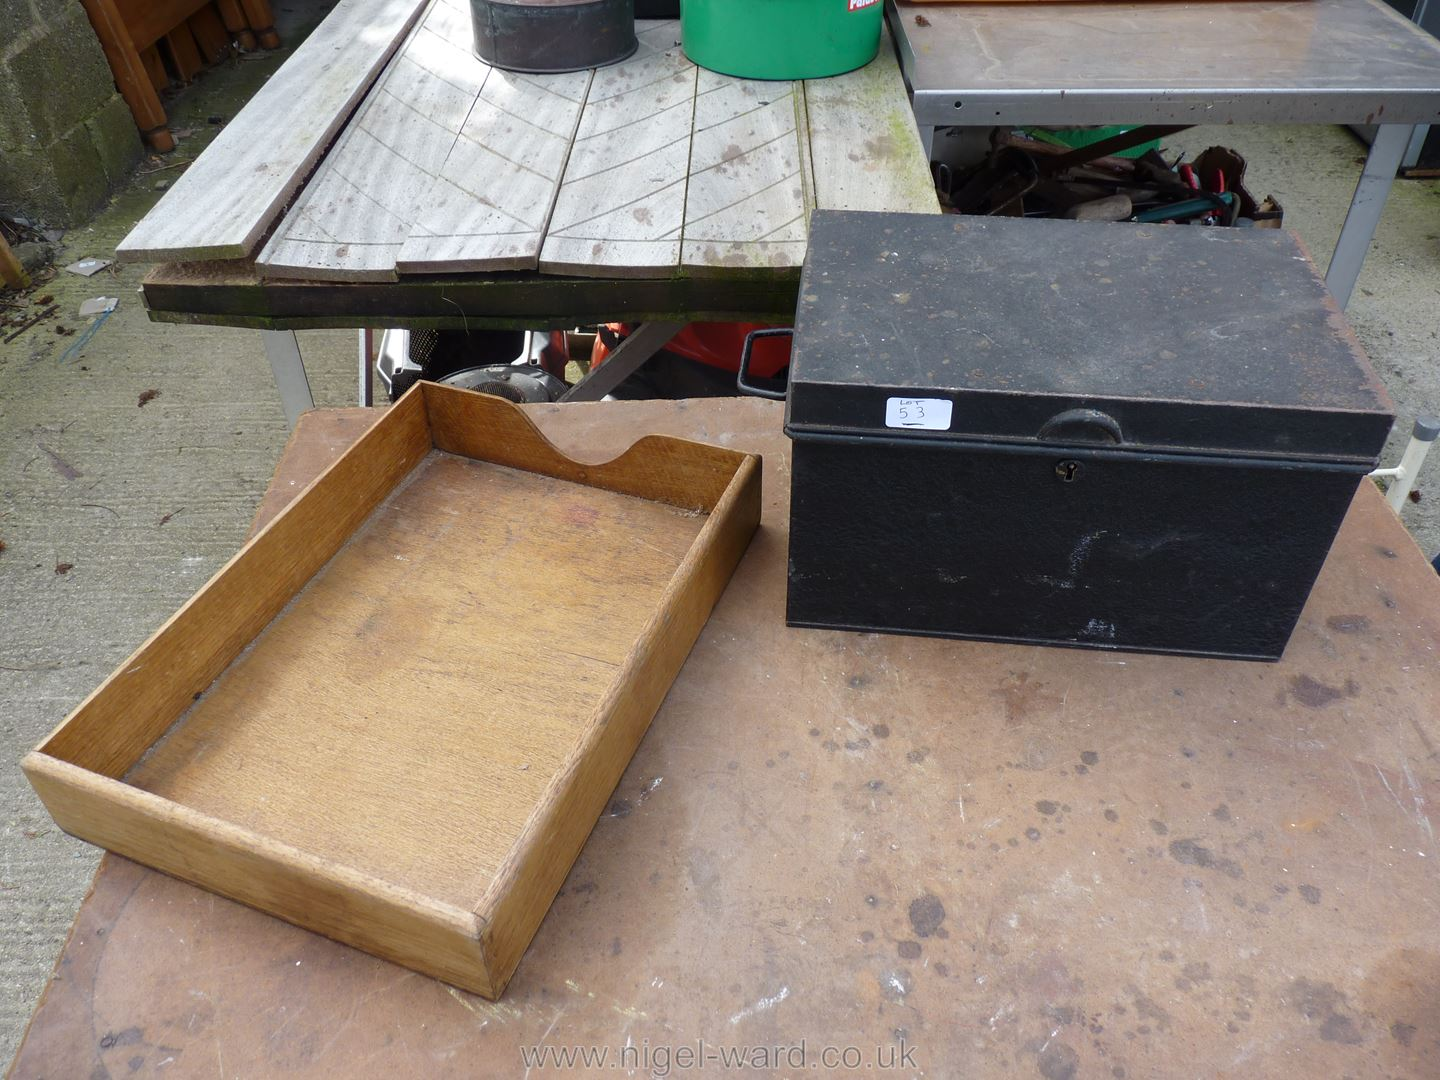 A metal deeds box and wooden stationary tray.